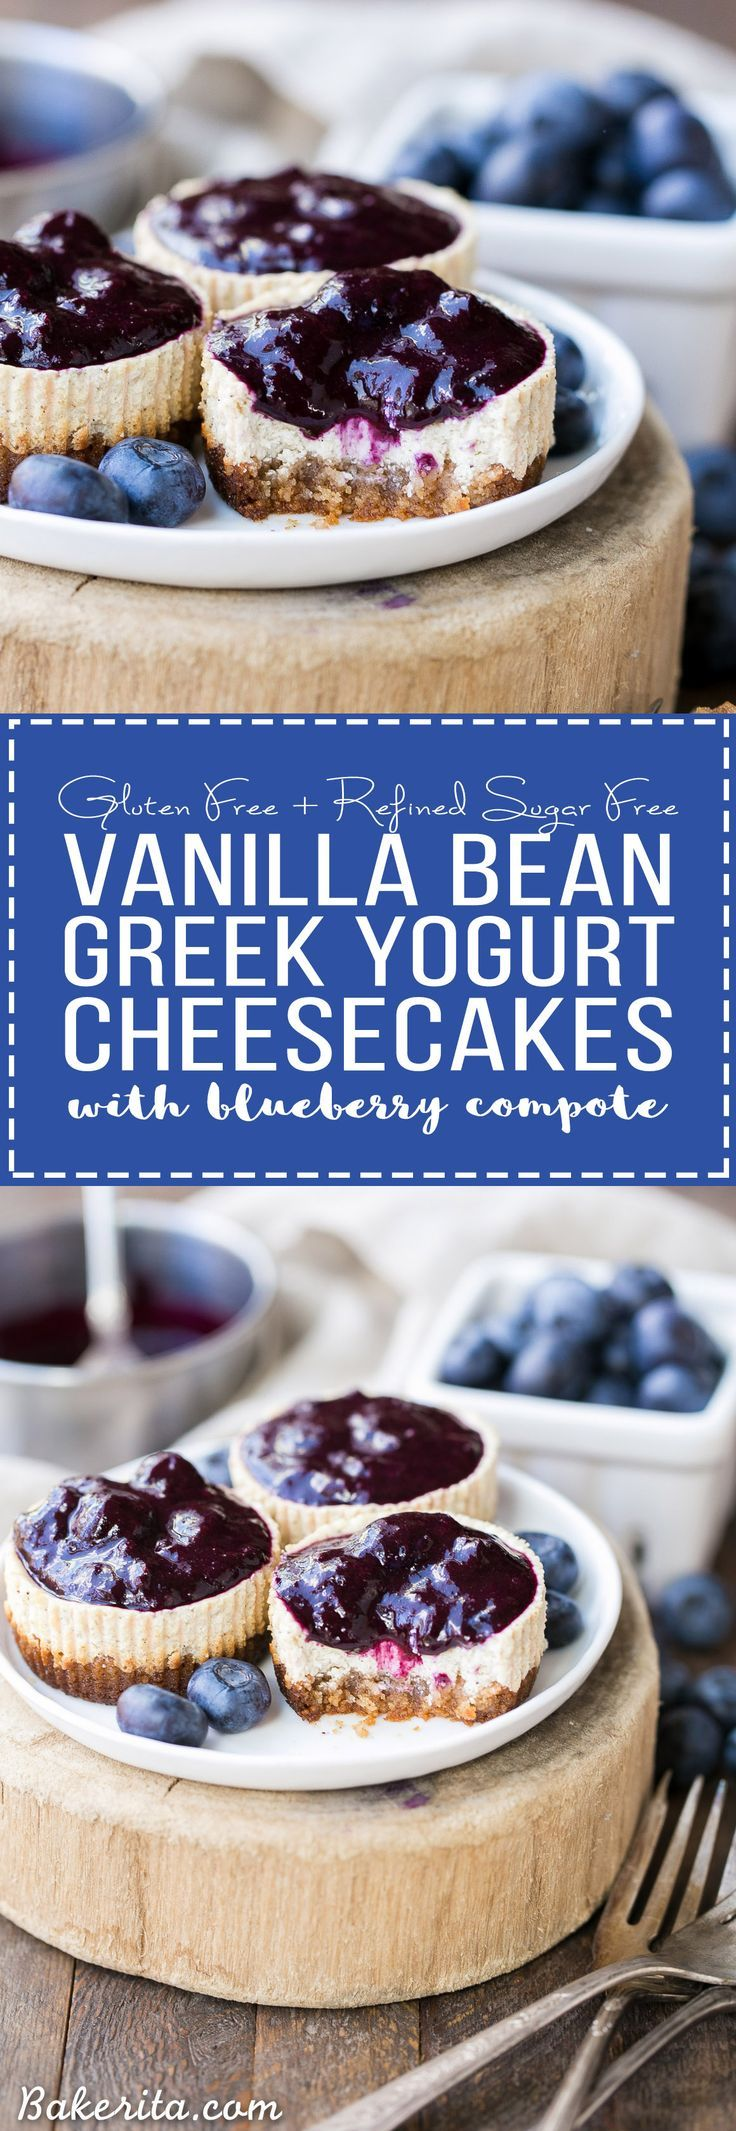 These Vanilla Bean Greek Yogurt Cheesecakes with Blueberry Compote are lightened up, but they're just as creamy and flavorful as traditional full-fat cheesecake. The easy blueberry compote takes this  (Low Carb Pie Greek Yogurt)